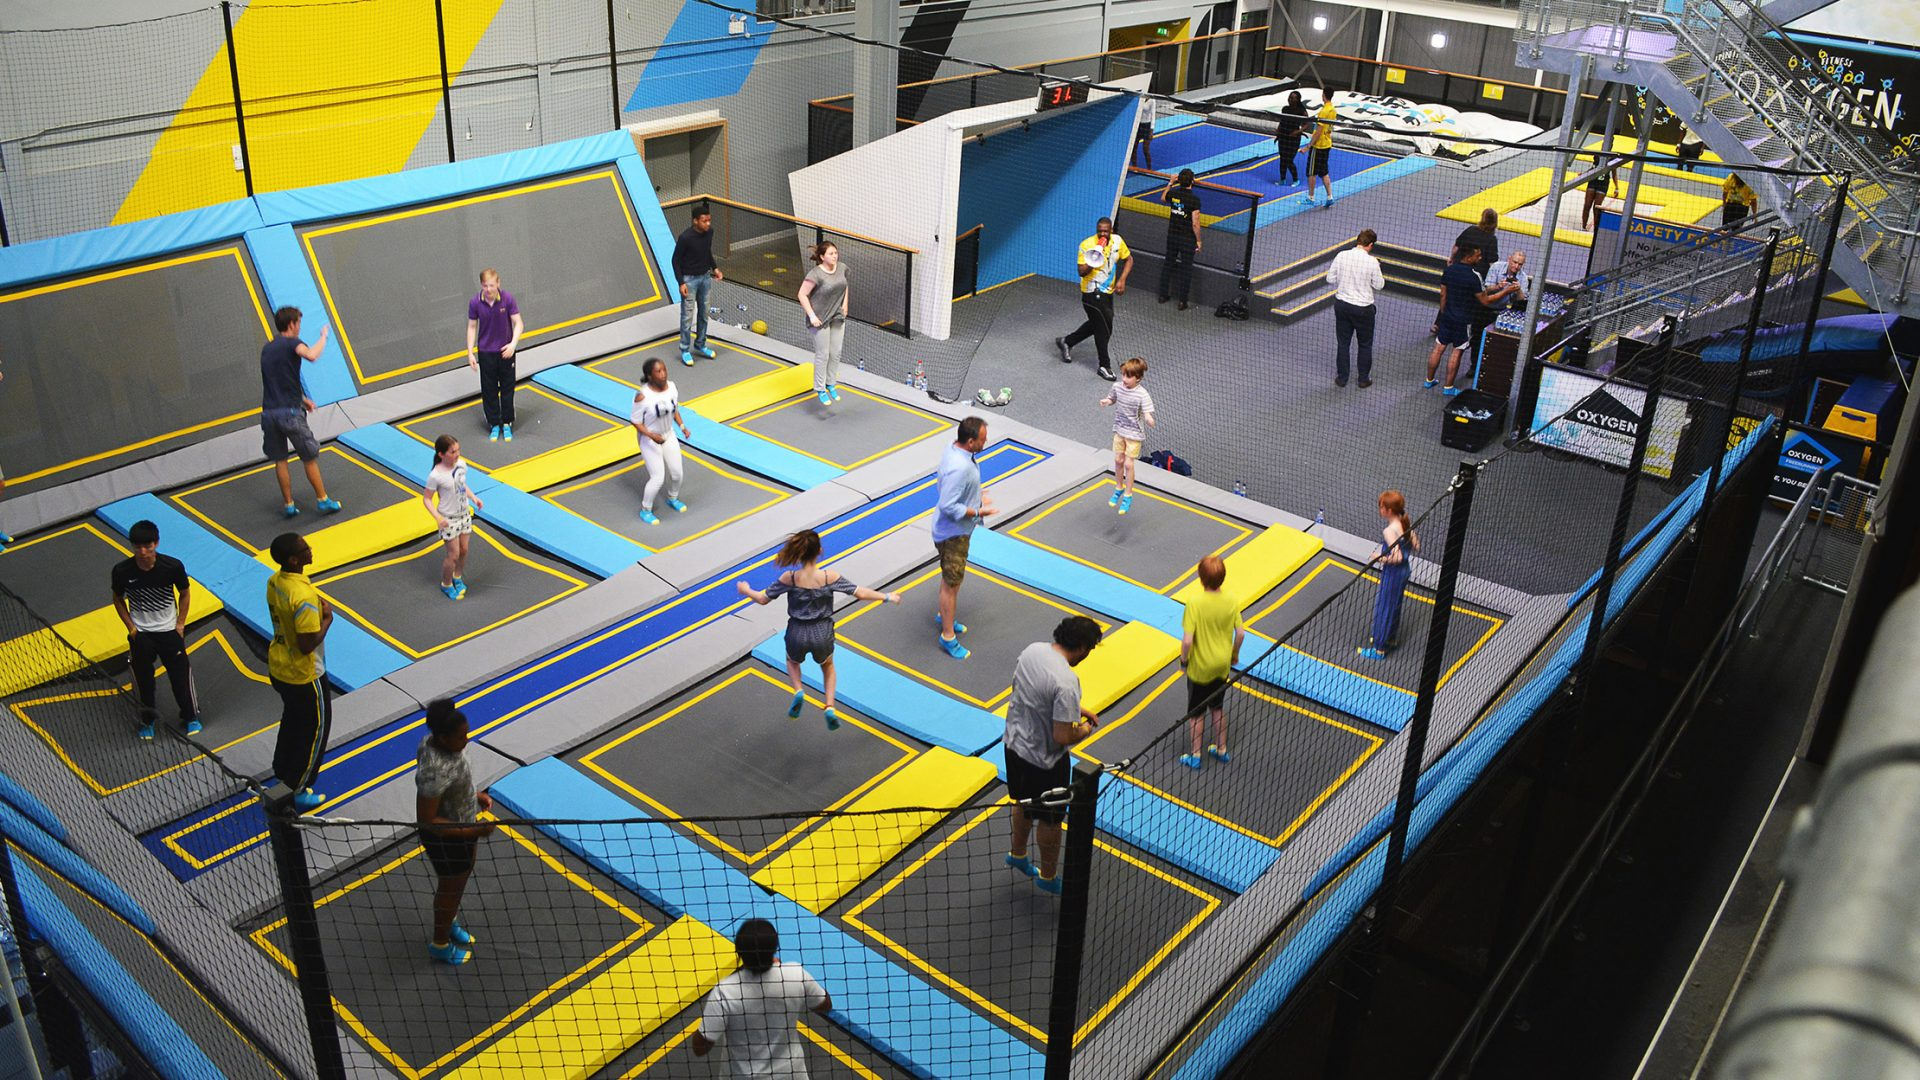 Group of people in a trampoline park